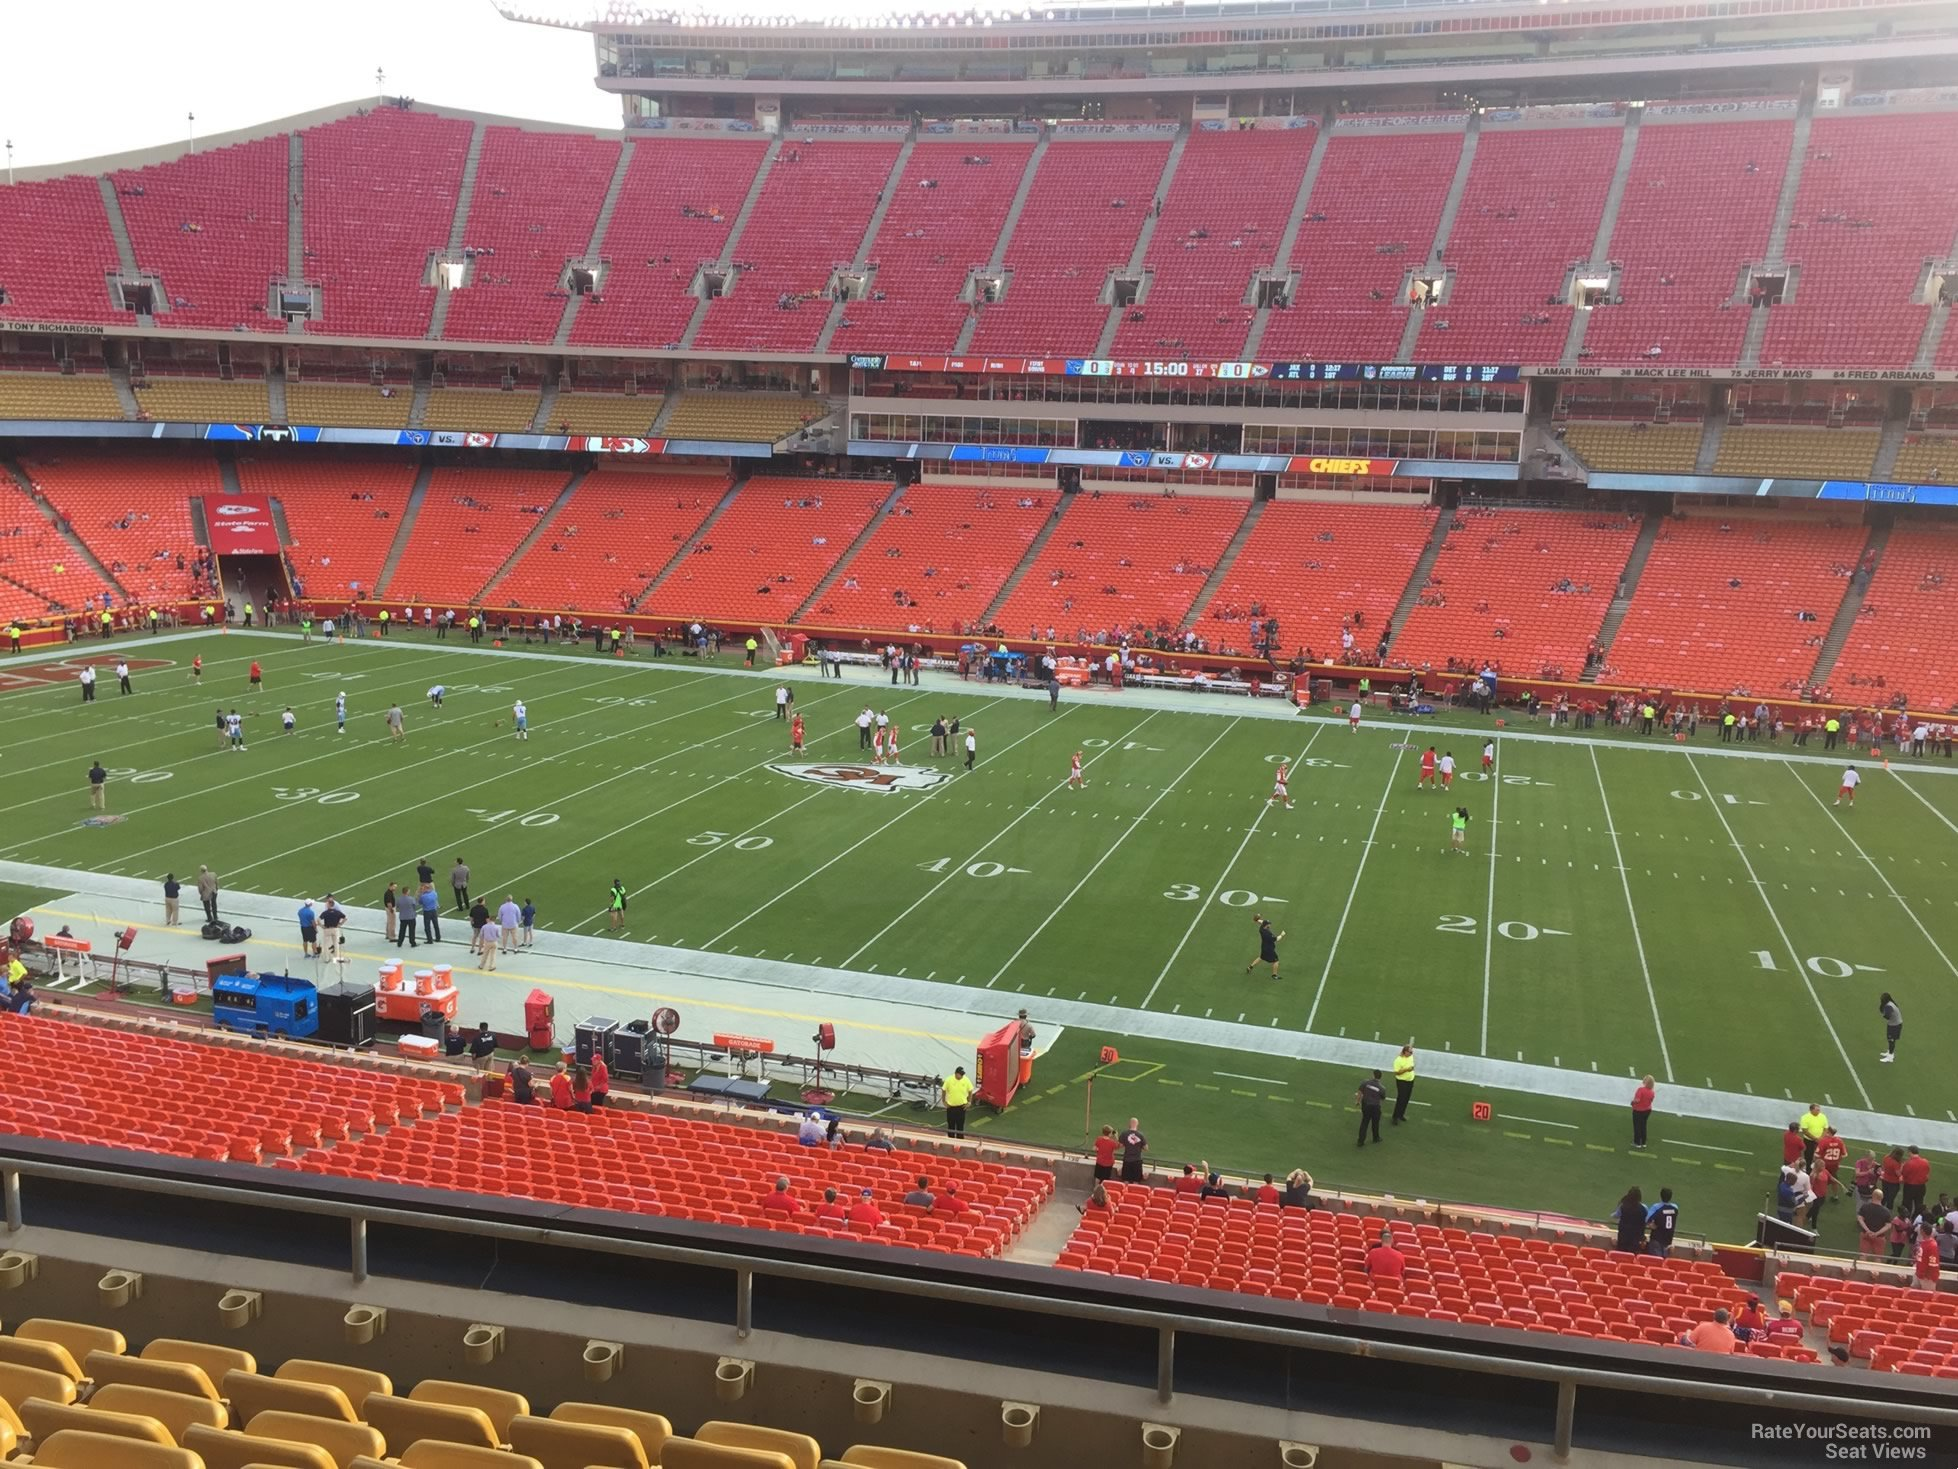 Seat View for Arrowhead Stadium Section 245, Row 7